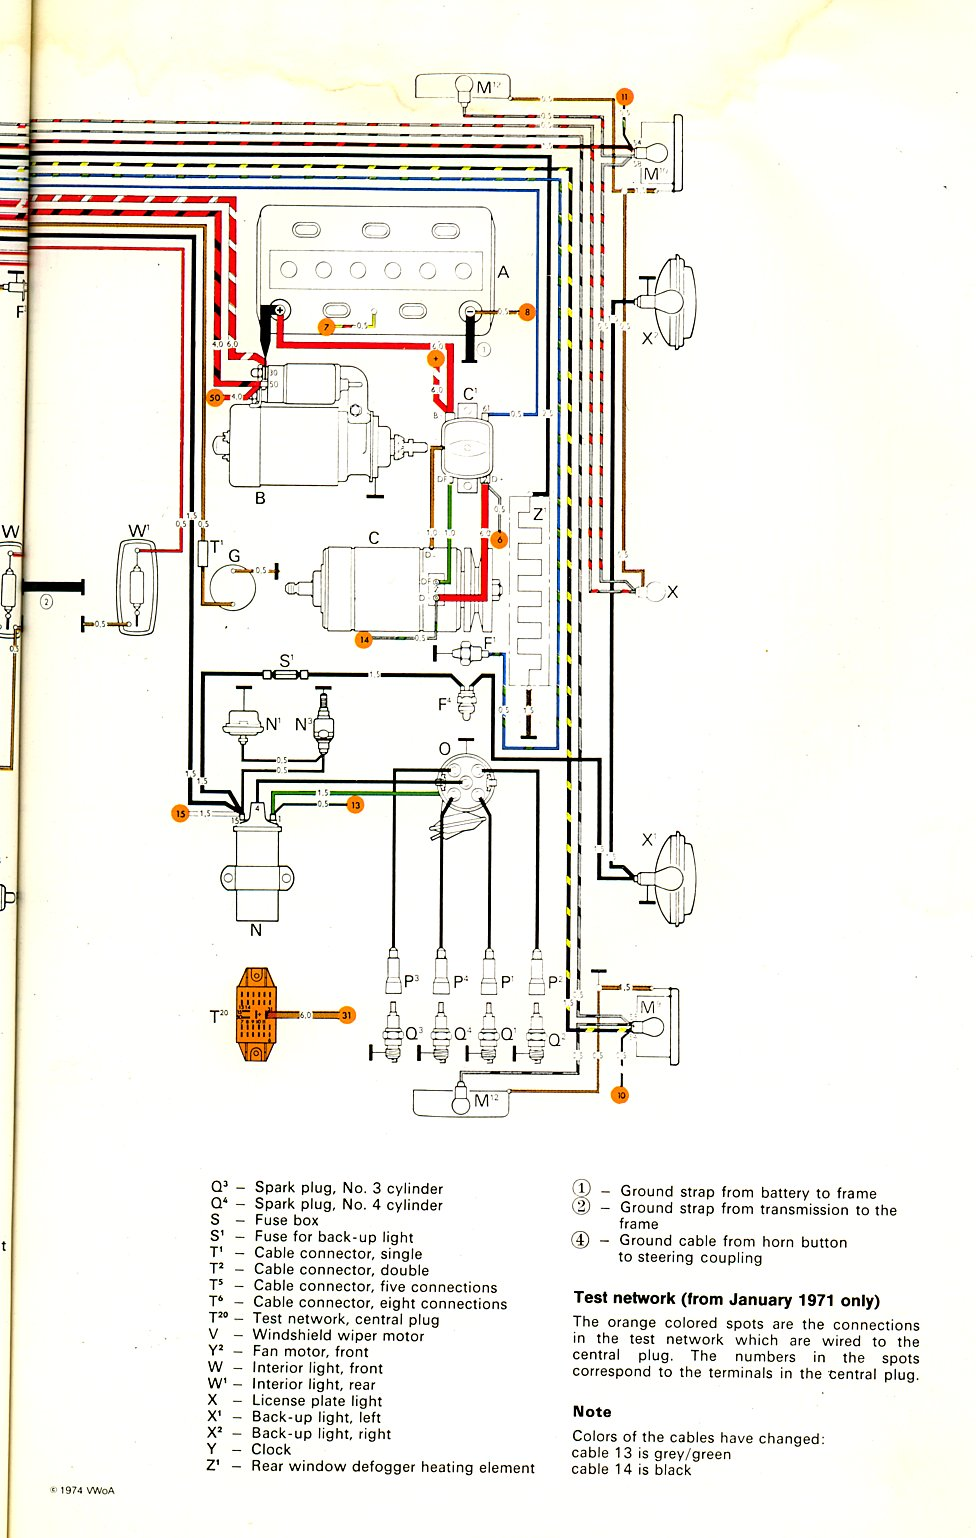 1957 Vw Wiring Diagram Library 1967 Ford Ltd